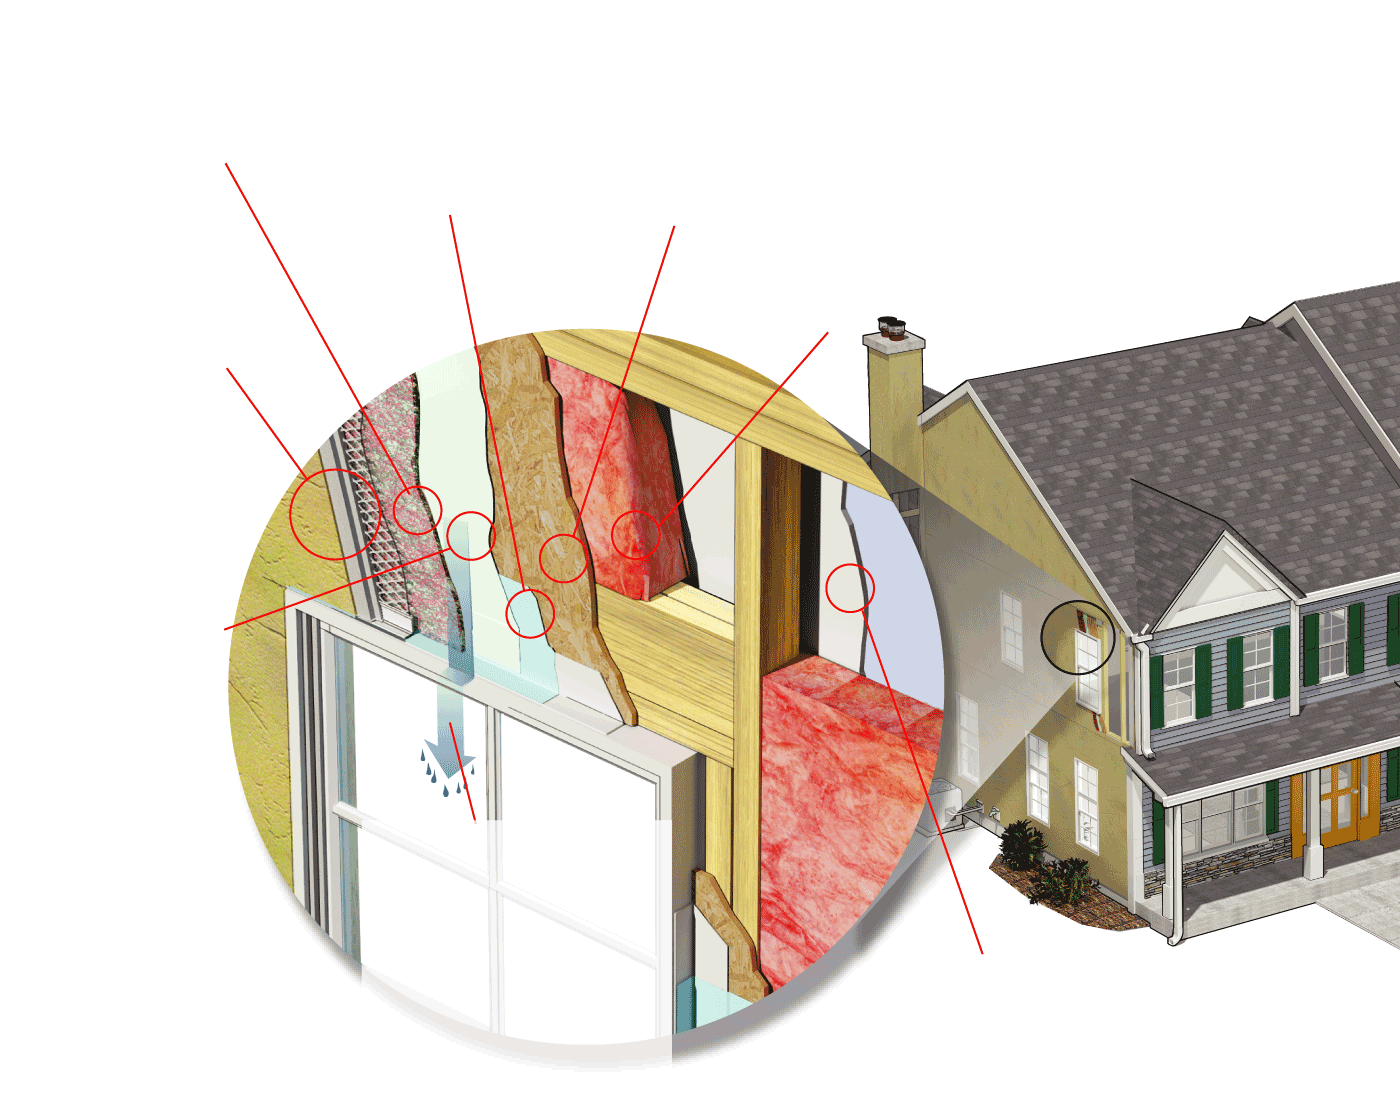 How water intrusion in new homes turns American dreams to